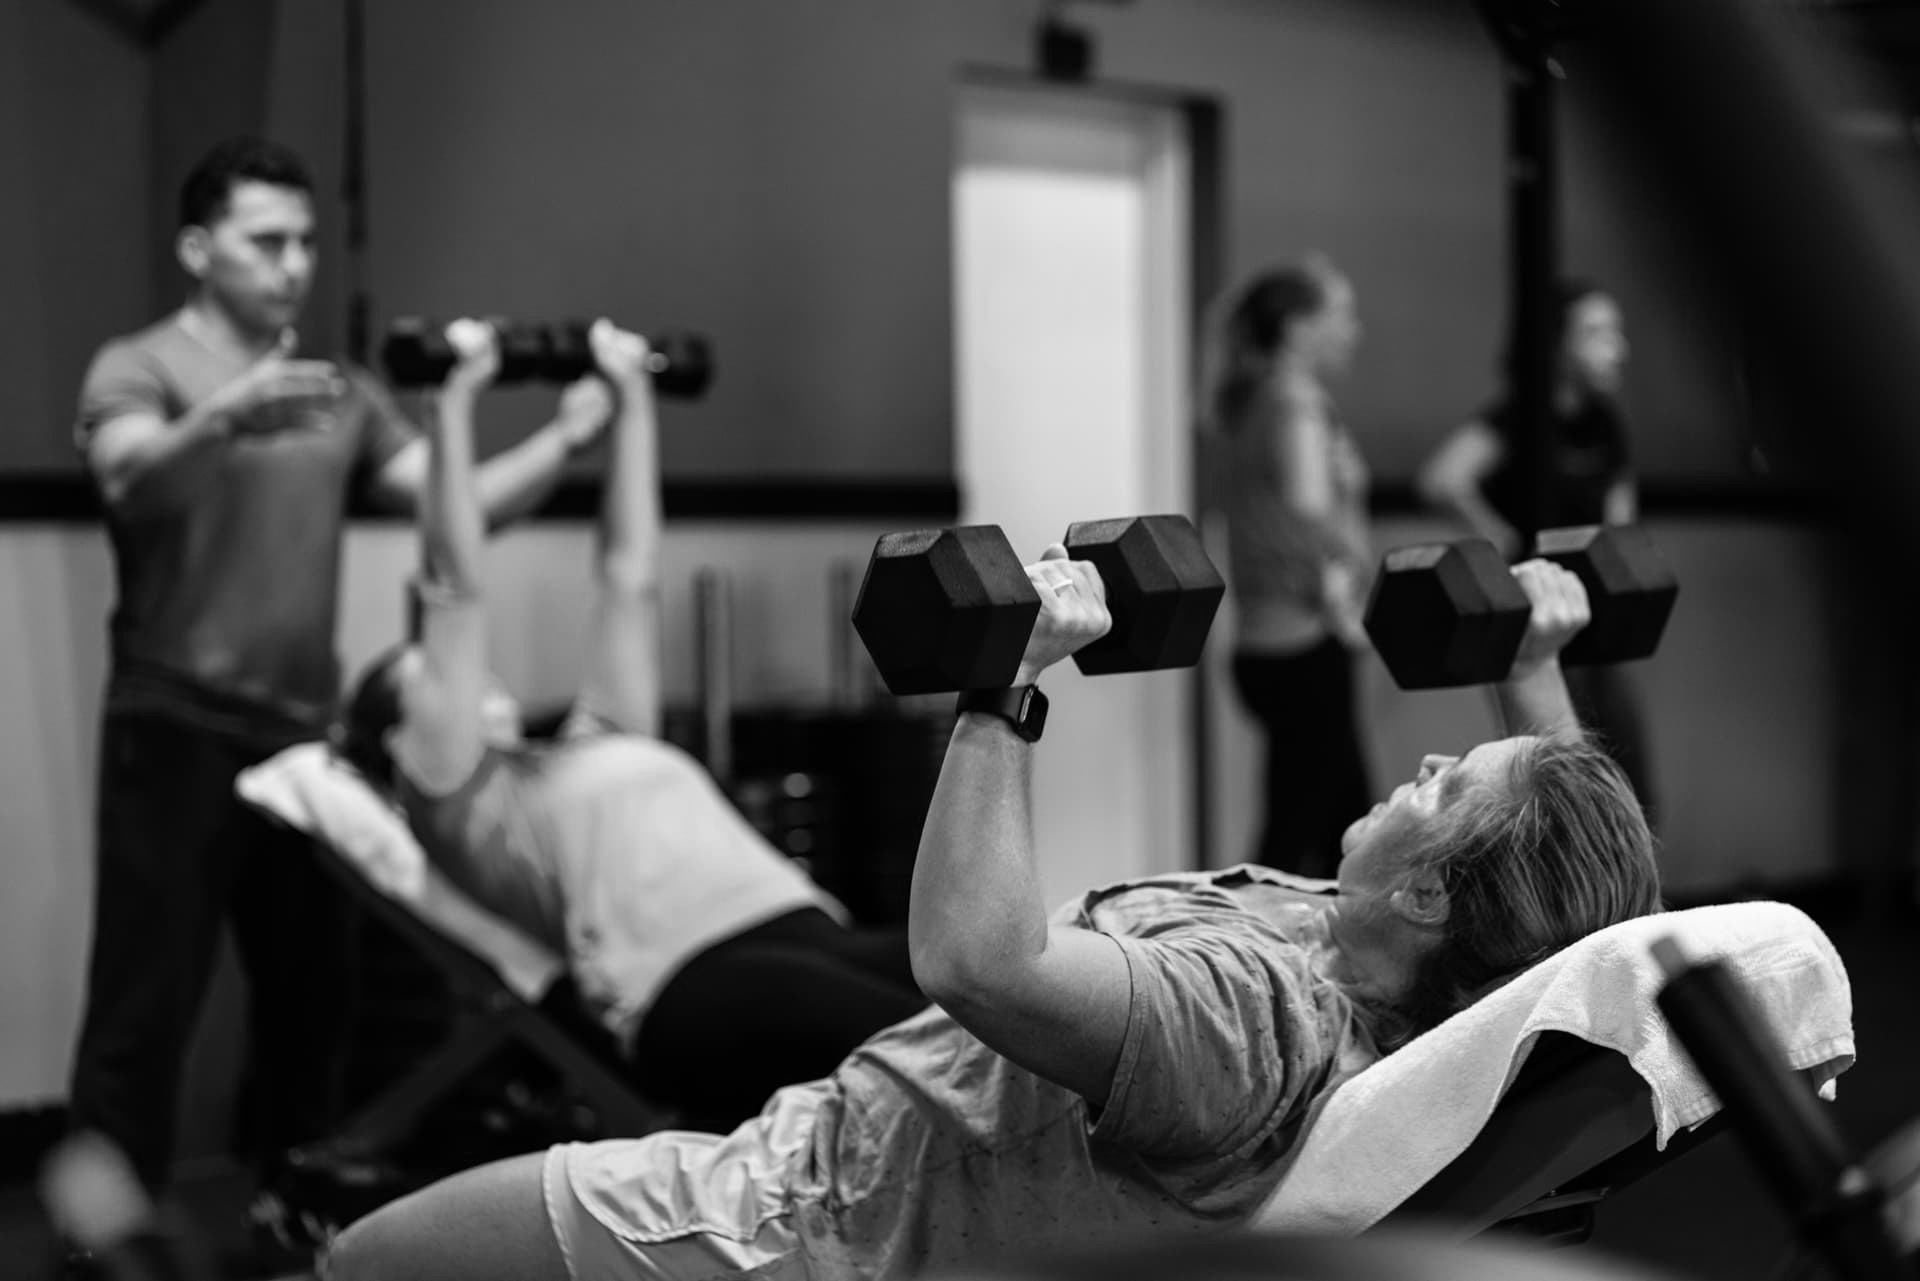 Wilmington area gym, Axis Fitness, offers Personal Training, Open Gym, Group Training, Pilates, Spin and More.